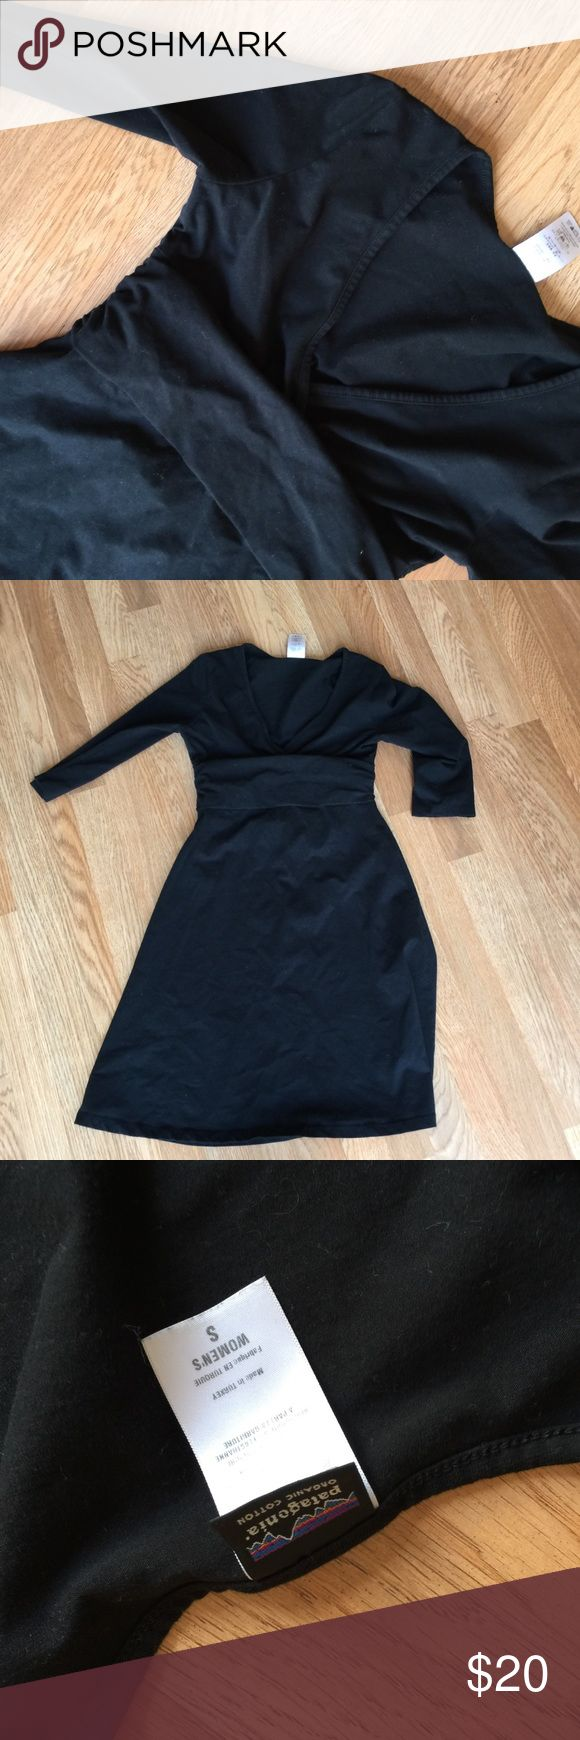 Patagonia dress Worn but in great shape super soft stretchy and comfortable Patagonia Dresses Midi